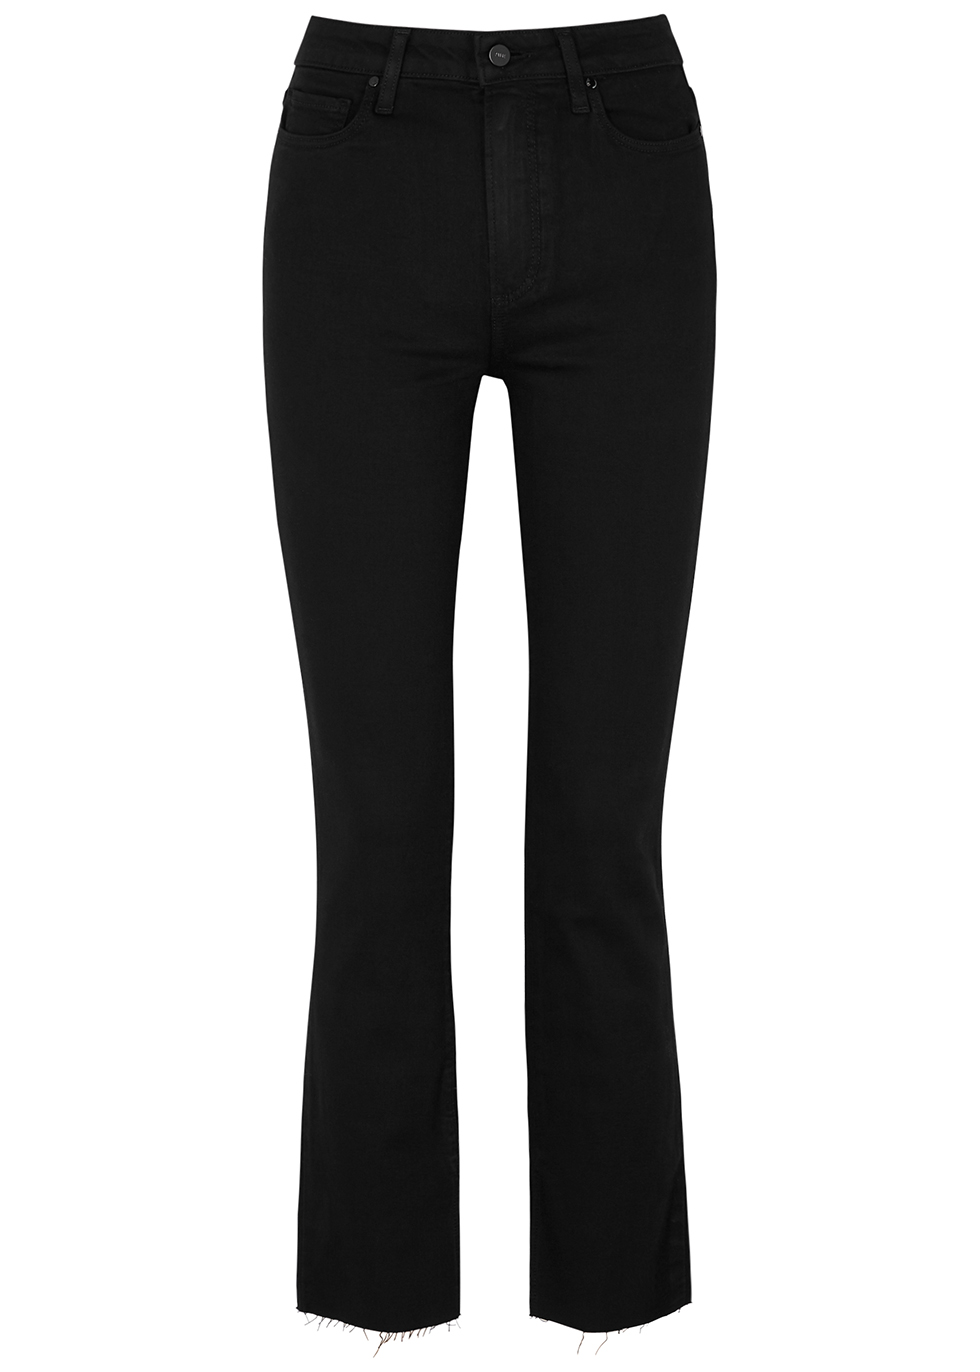 Cindy Transcend black straight-leg jeans